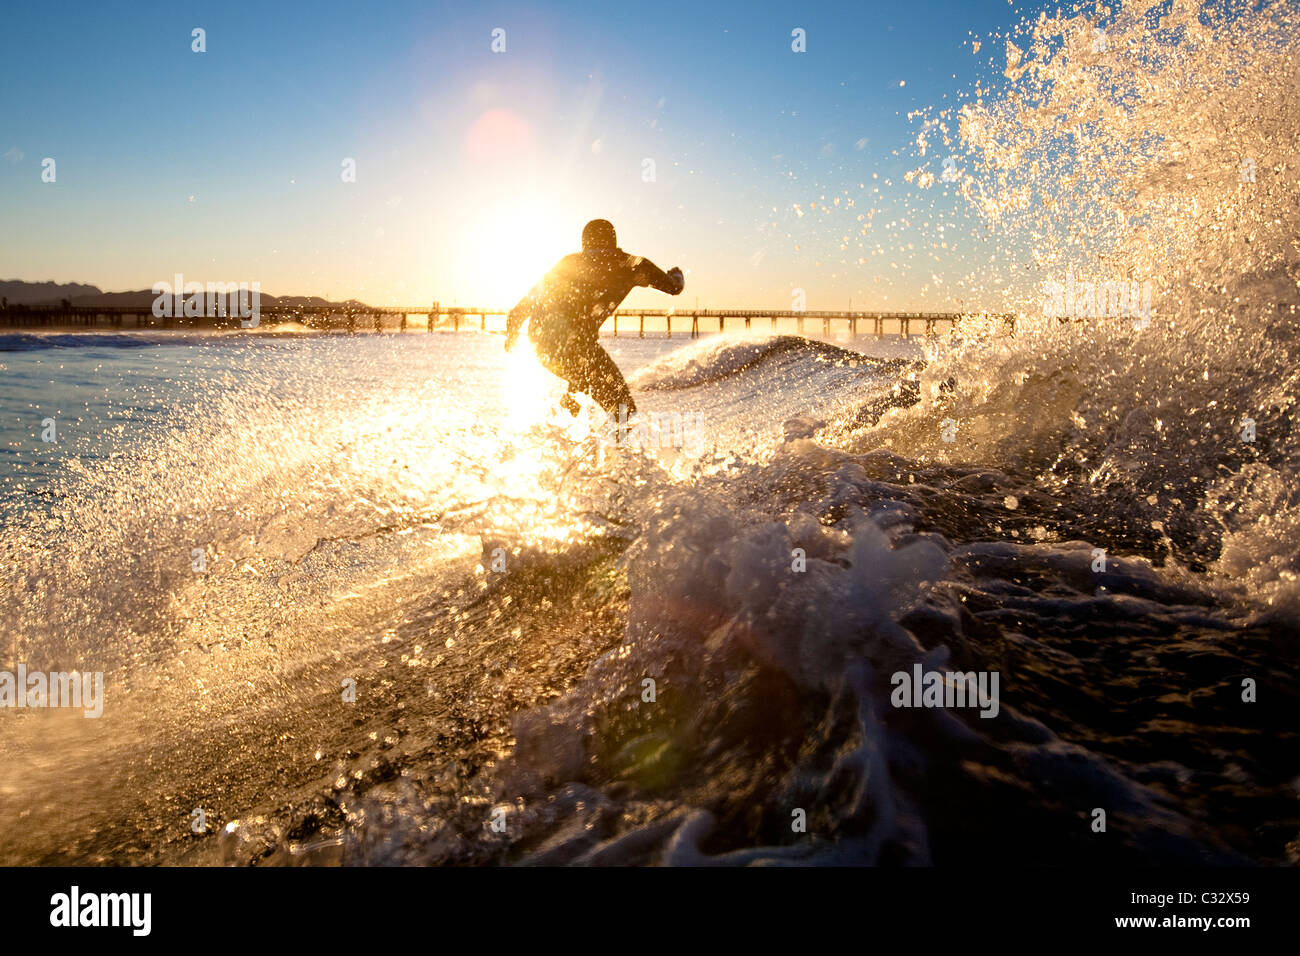 A surfer sets up for an air while riding a wave at Port Hueneme Beach in the city of Port Hueneme, California on - Stock Image